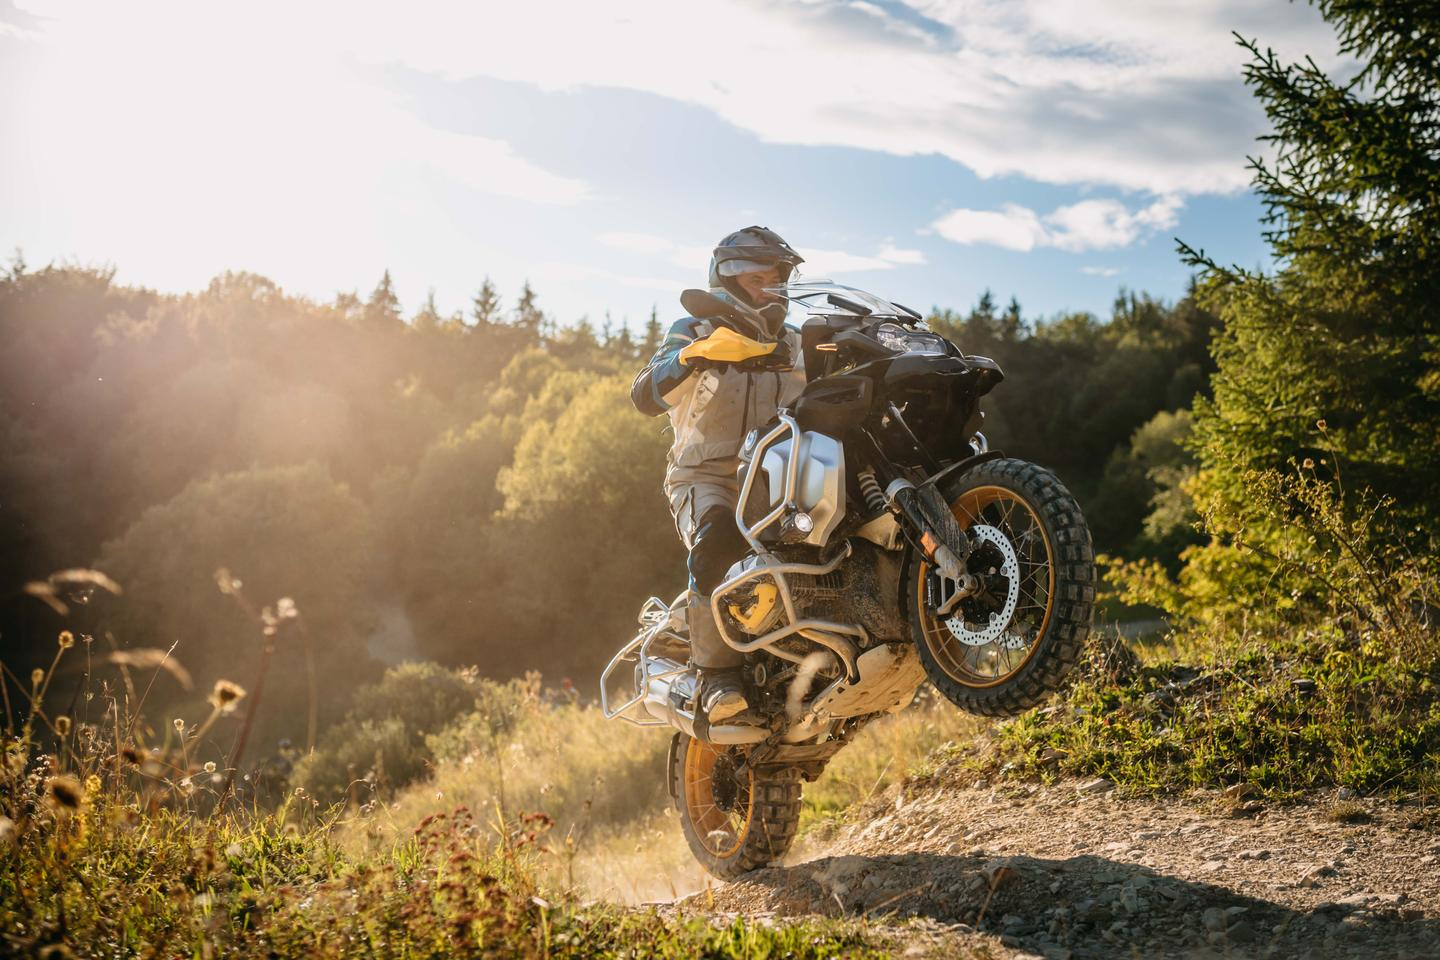 BMW's R1250GS Adventure can certainly party in the right hands